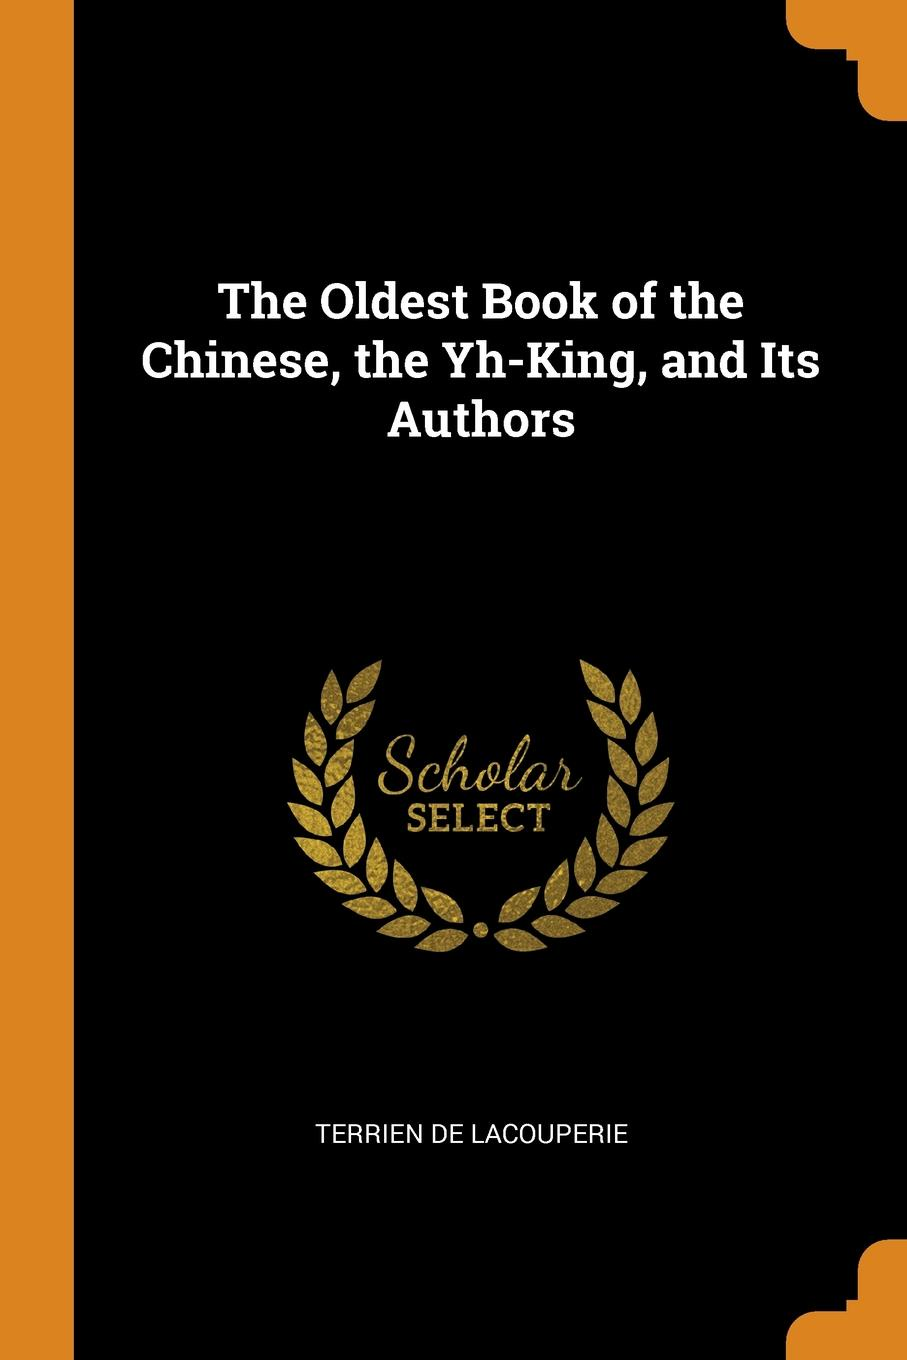 Terrien De Lacouperie. The Oldest Book of the Chinese, the Yh-King, and Its Authors